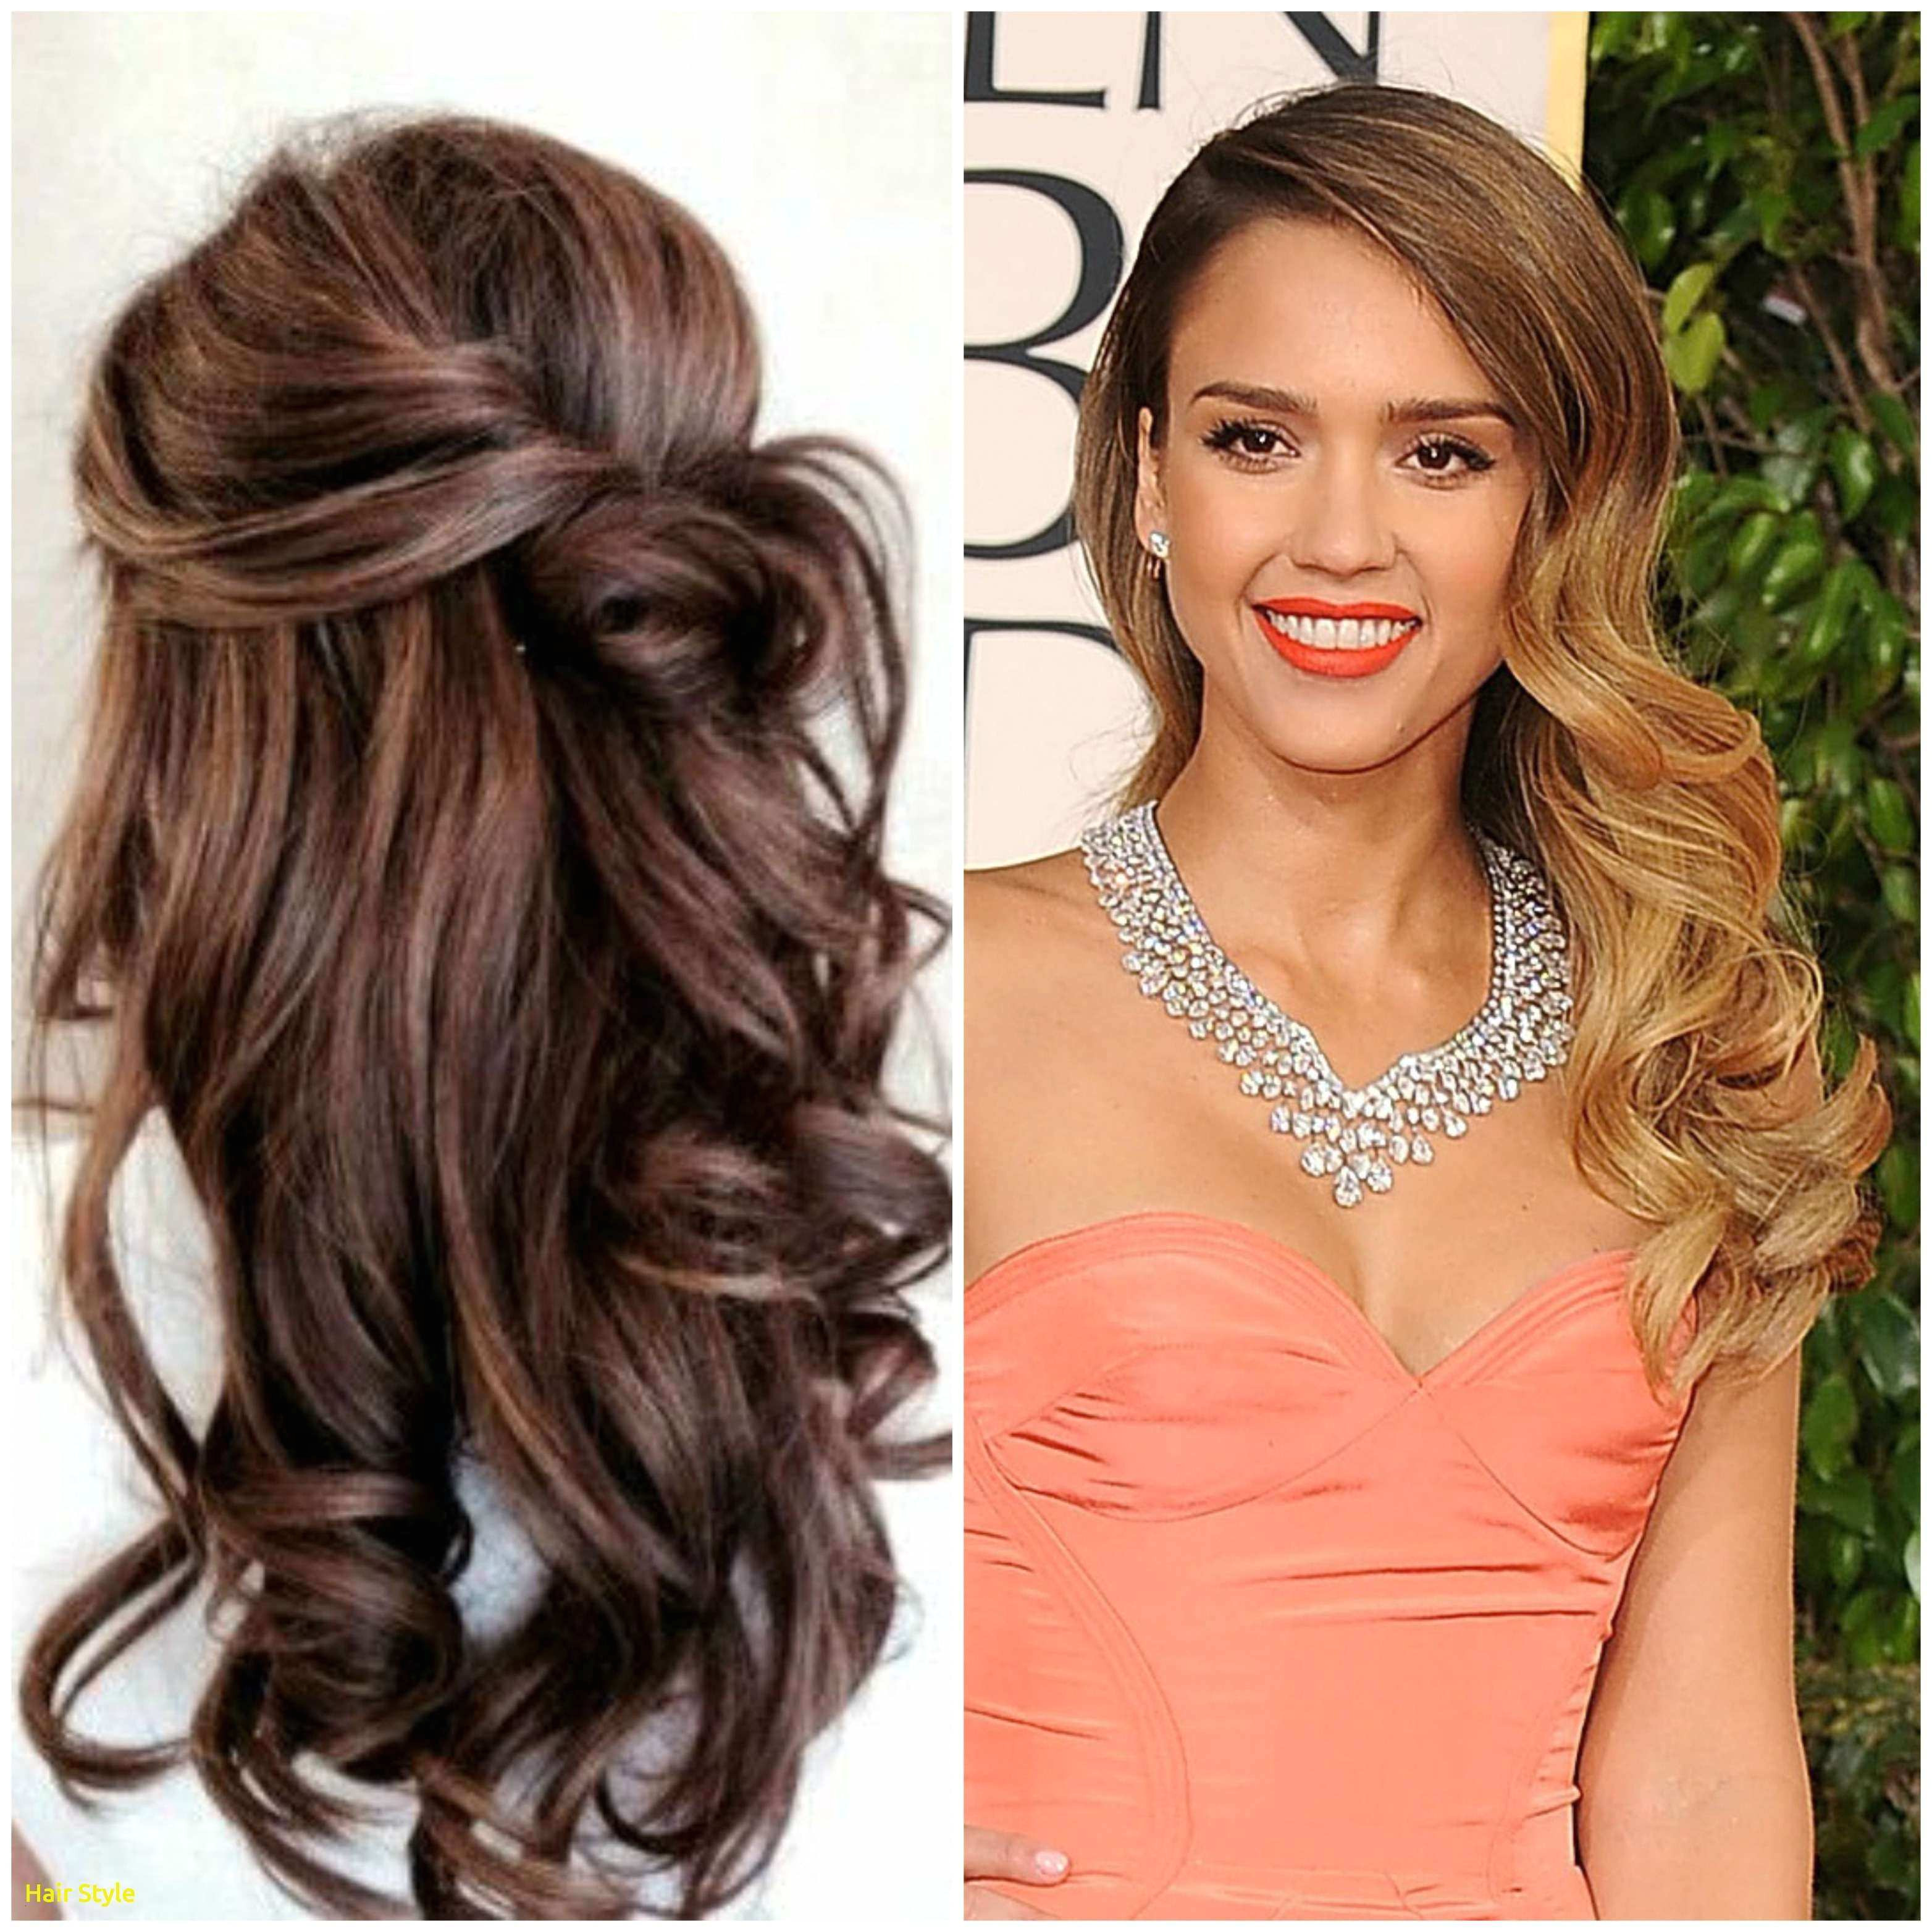 Hairstyles For Girls With Long Straight Hair New Beautiful Cute Hairstyles For Long Straight Hair